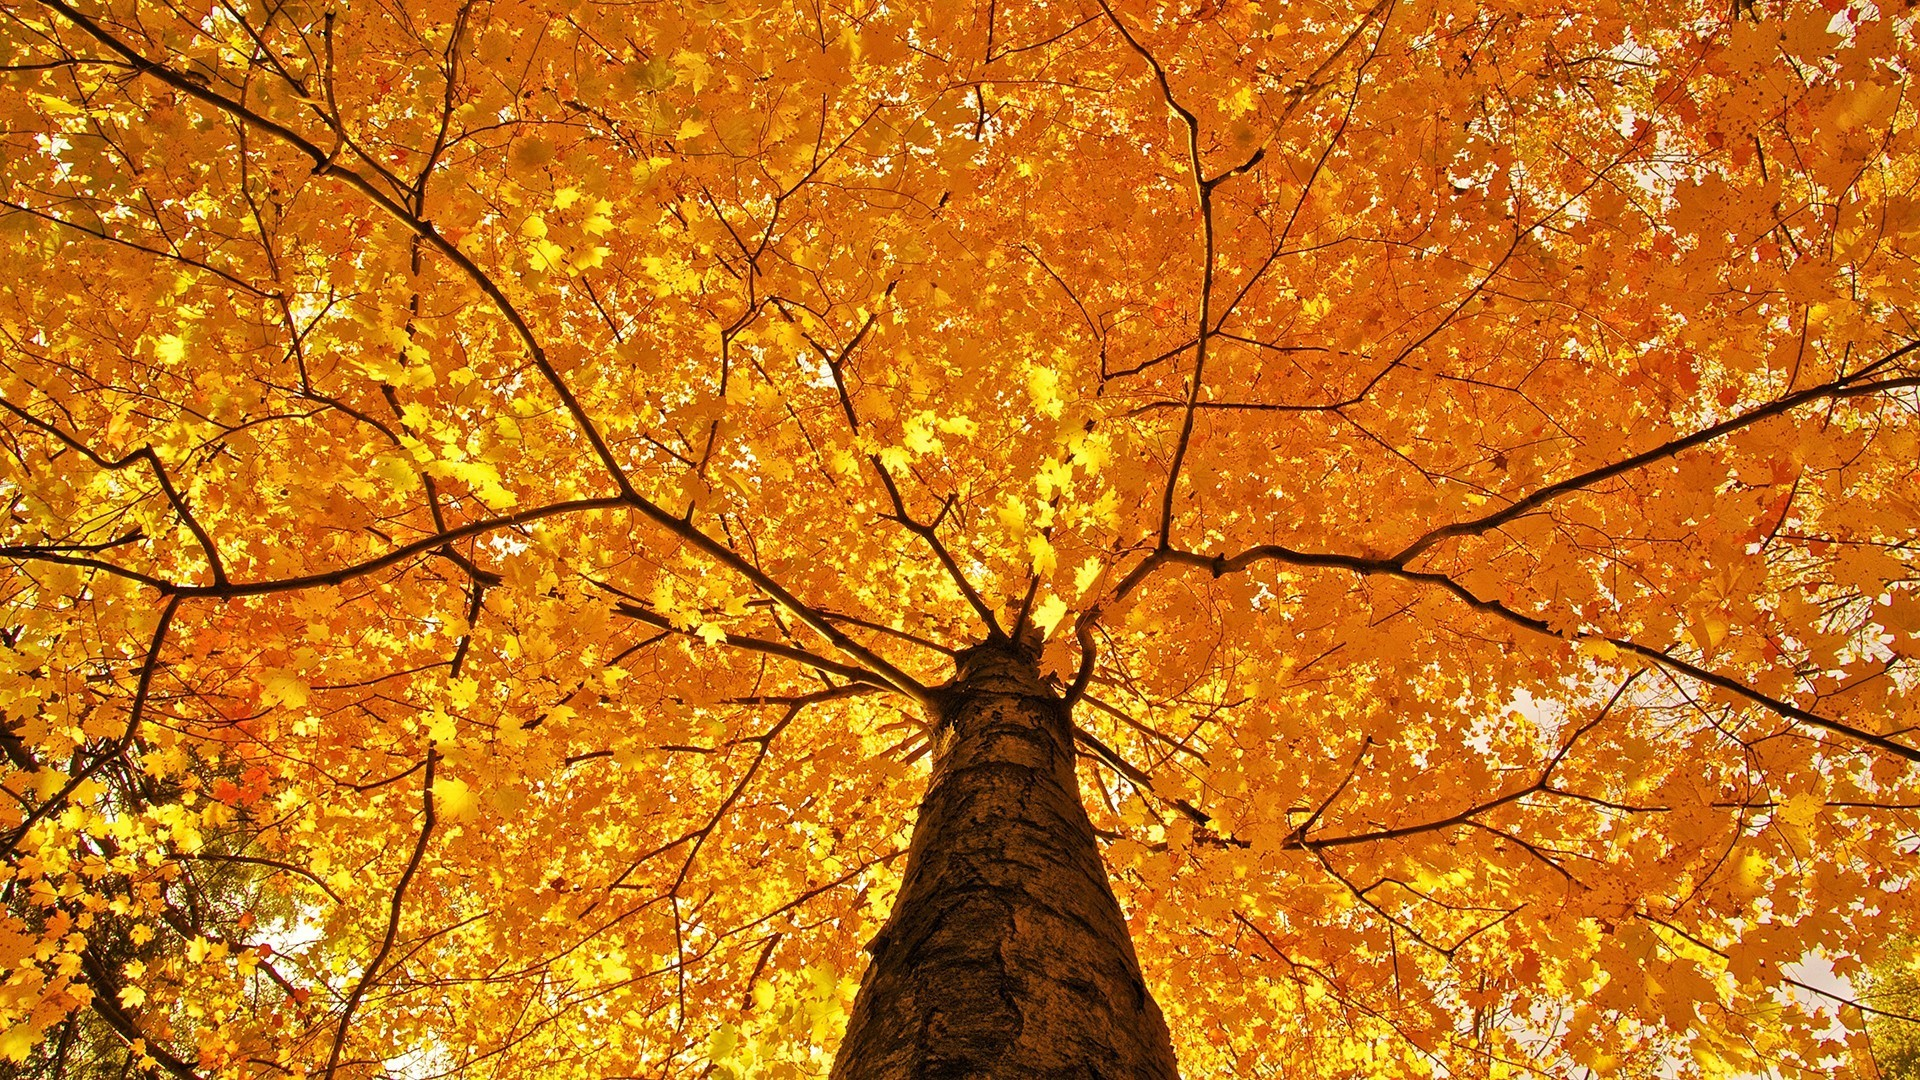 Yellowed Autumn Leaves HD Wide Wallpaper for Widescreen (45 Wallpapers)